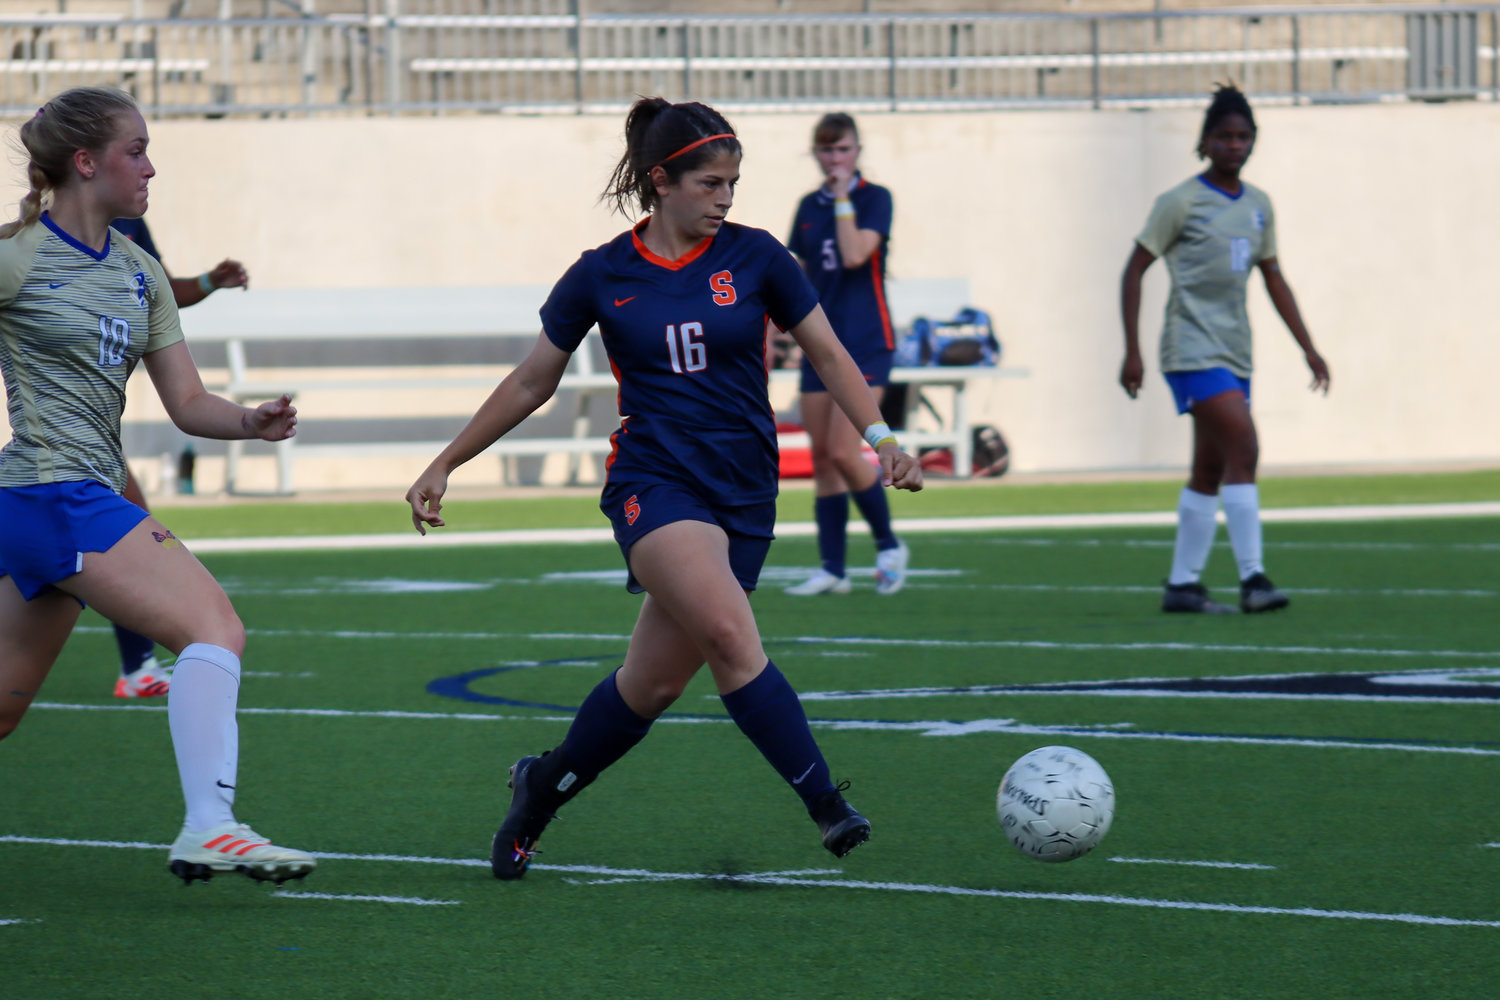 Seven Lakes senior midfielder Megan Vigil controls possession during the Spartans' 7-0 Class 6A bi-district playoff win on Friday, March 26, at Legacy Stadium.